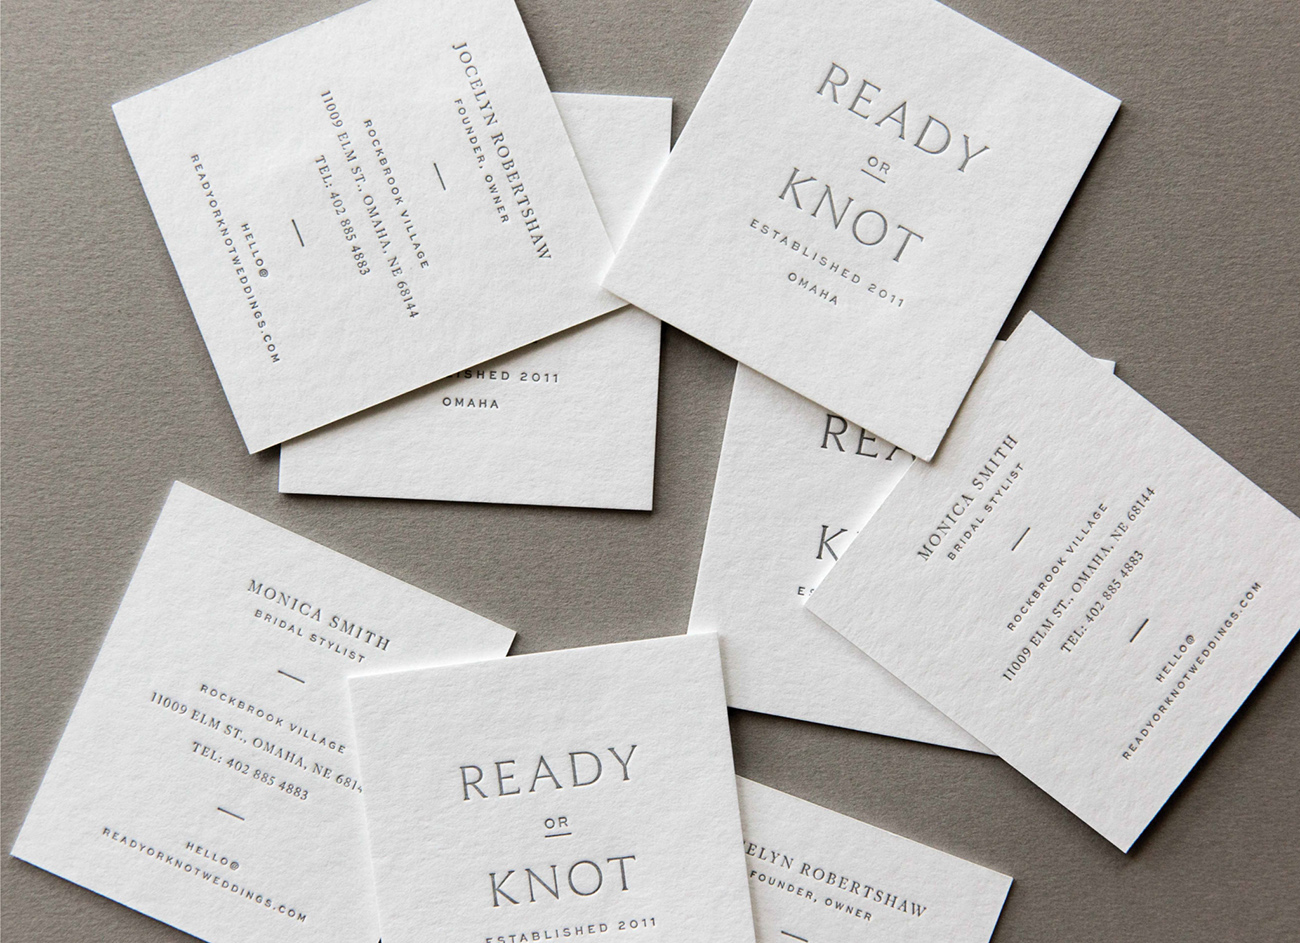 Saturday Studio - Ready or Knot - wedding agency